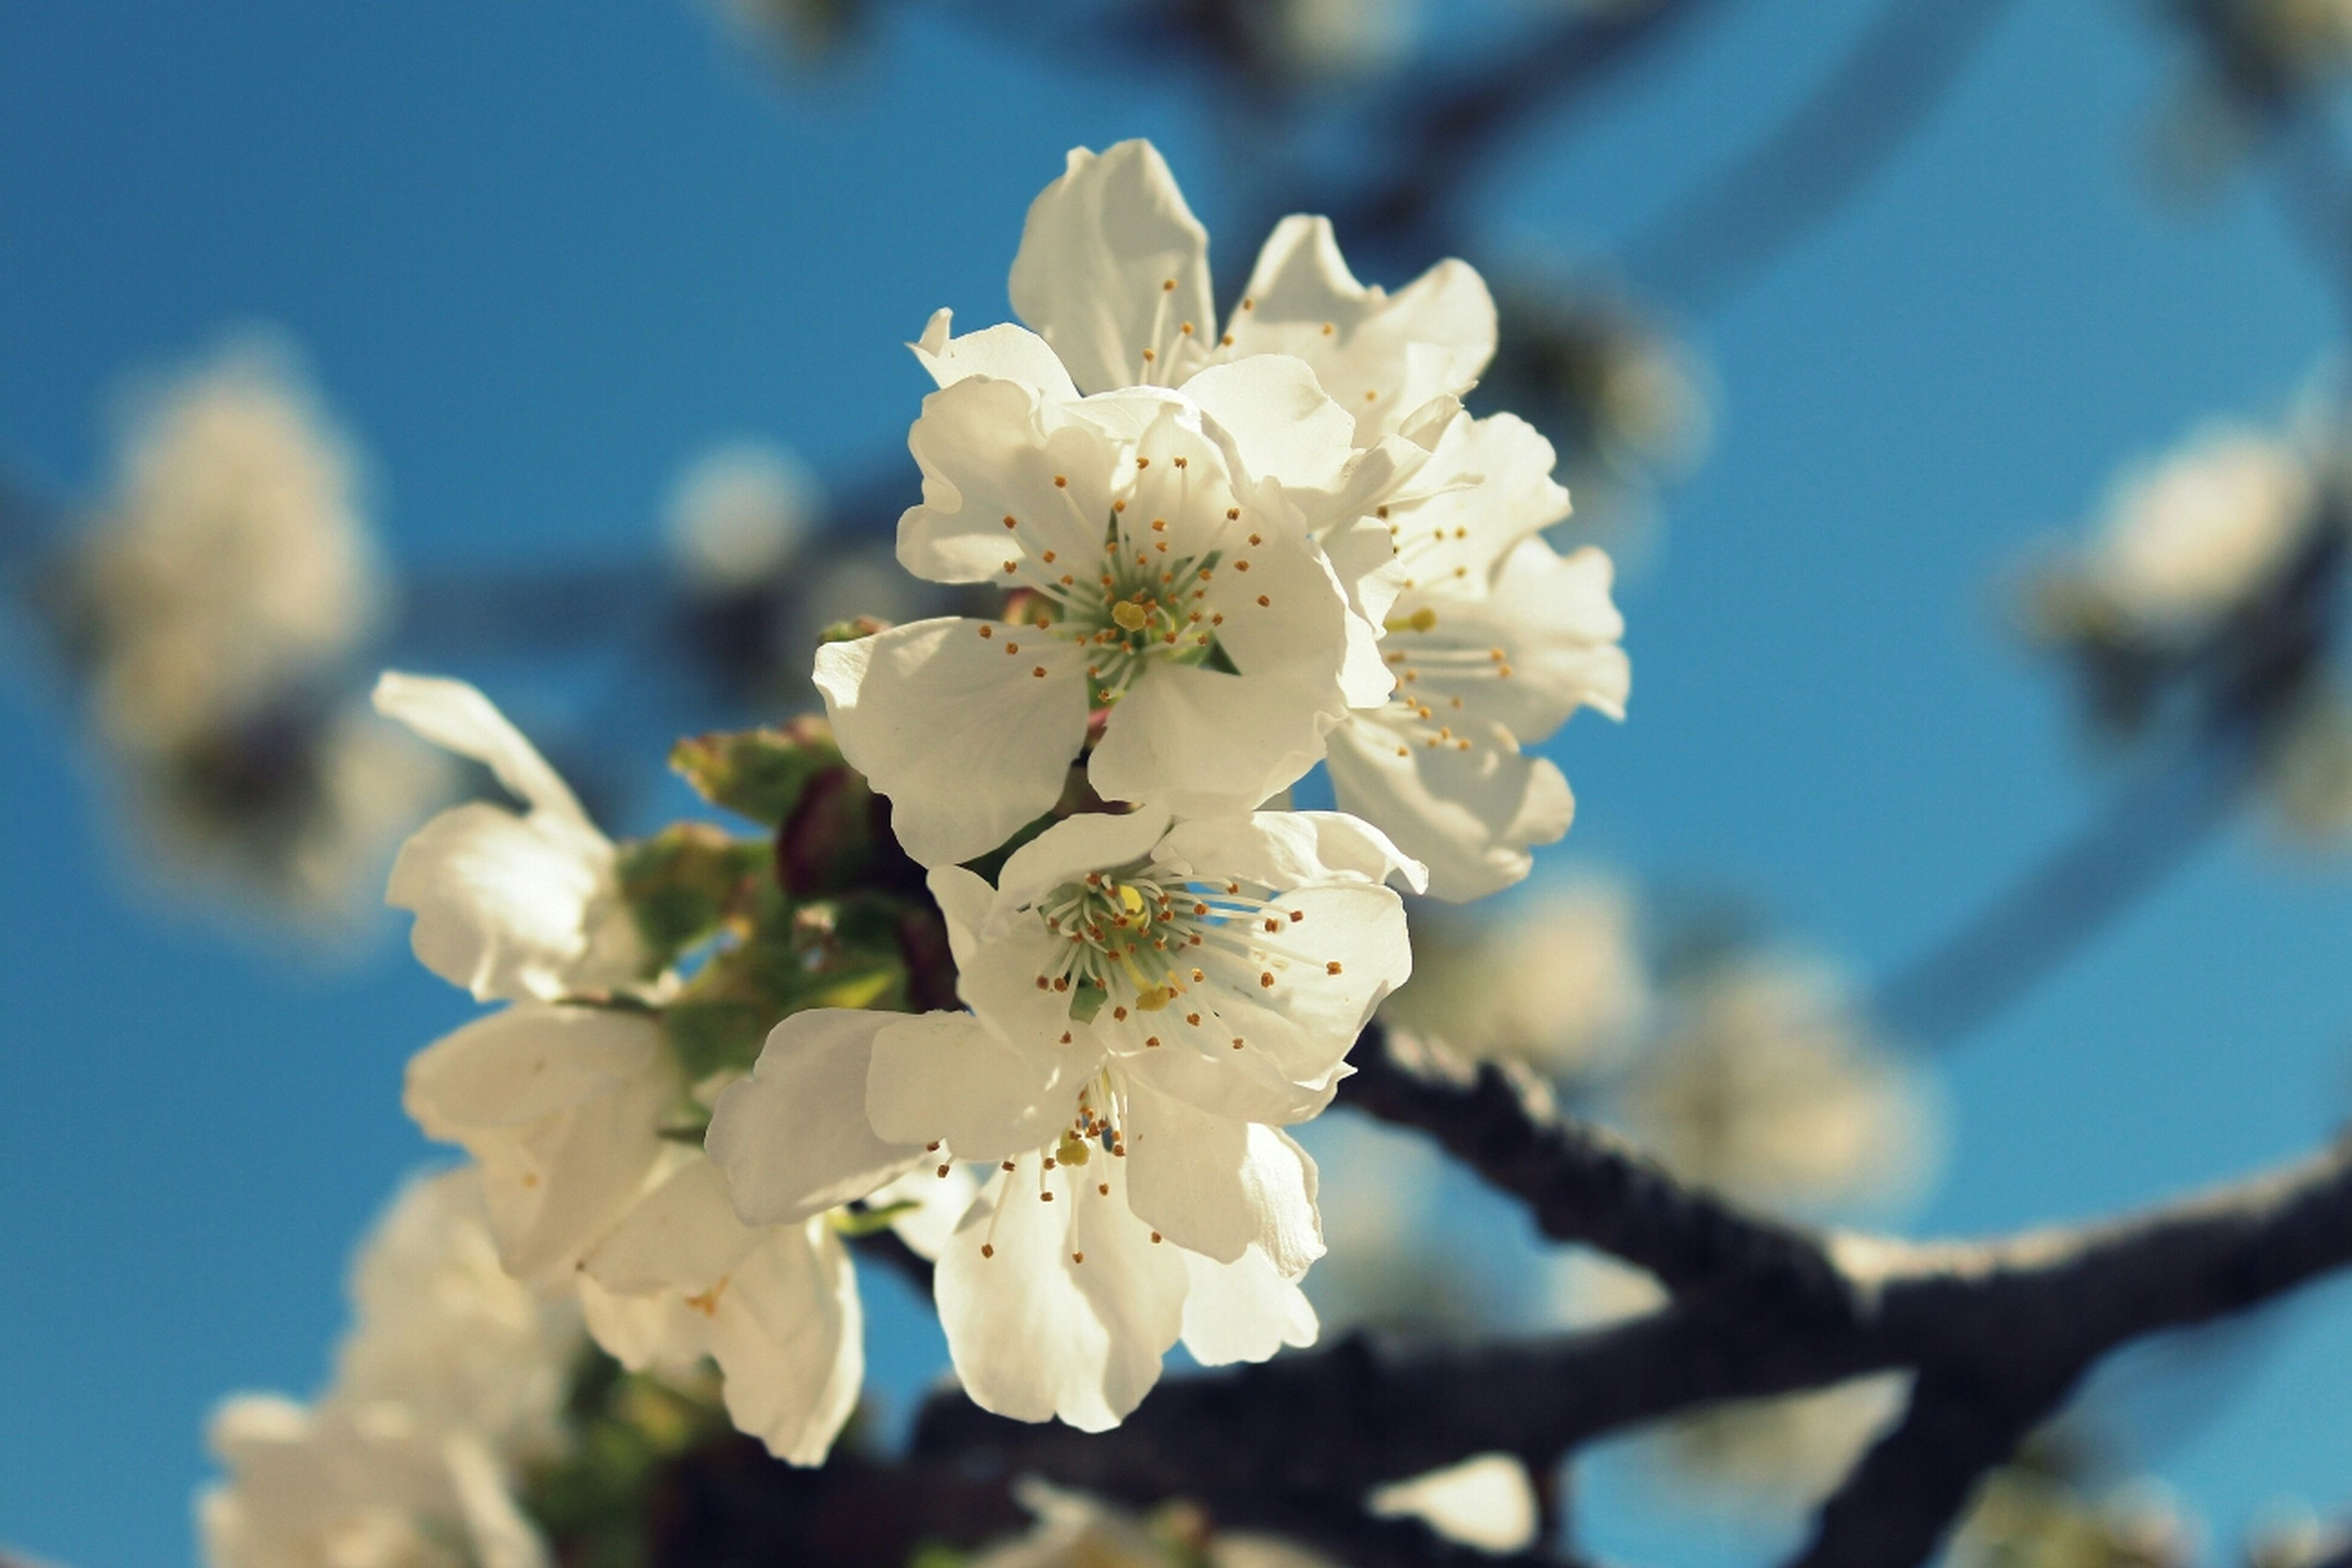 flower, freshness, growth, branch, fragility, cherry blossom, tree, white color, beauty in nature, petal, focus on foreground, nature, blossom, close-up, cherry tree, blooming, twig, flower head, in bloom, fruit tree